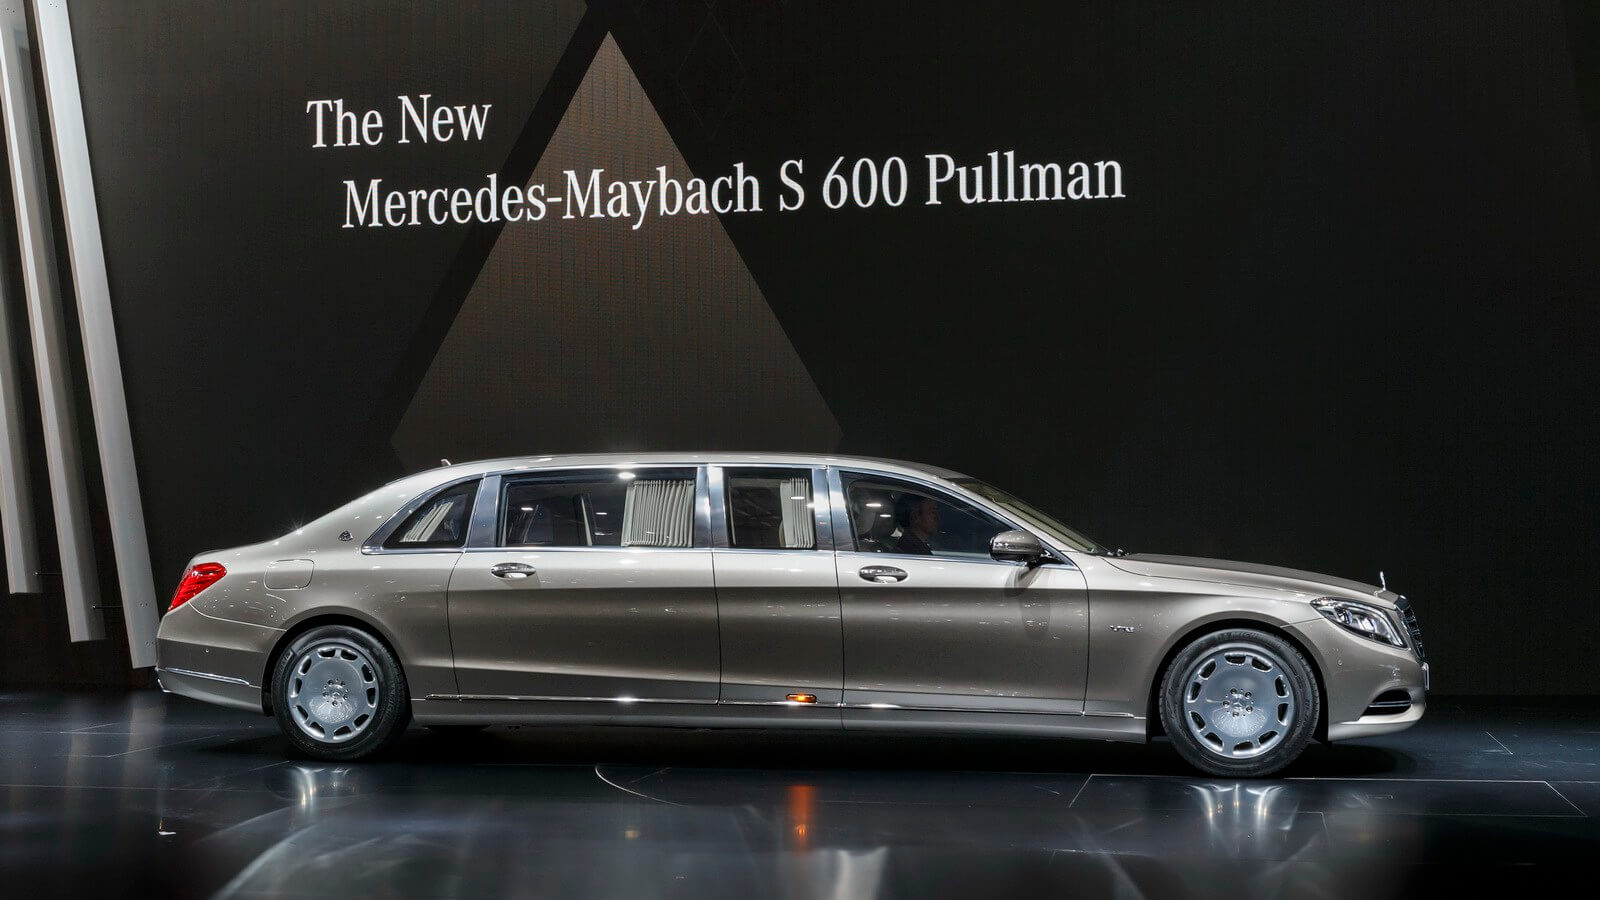 New Mercedes bullet-proof limo